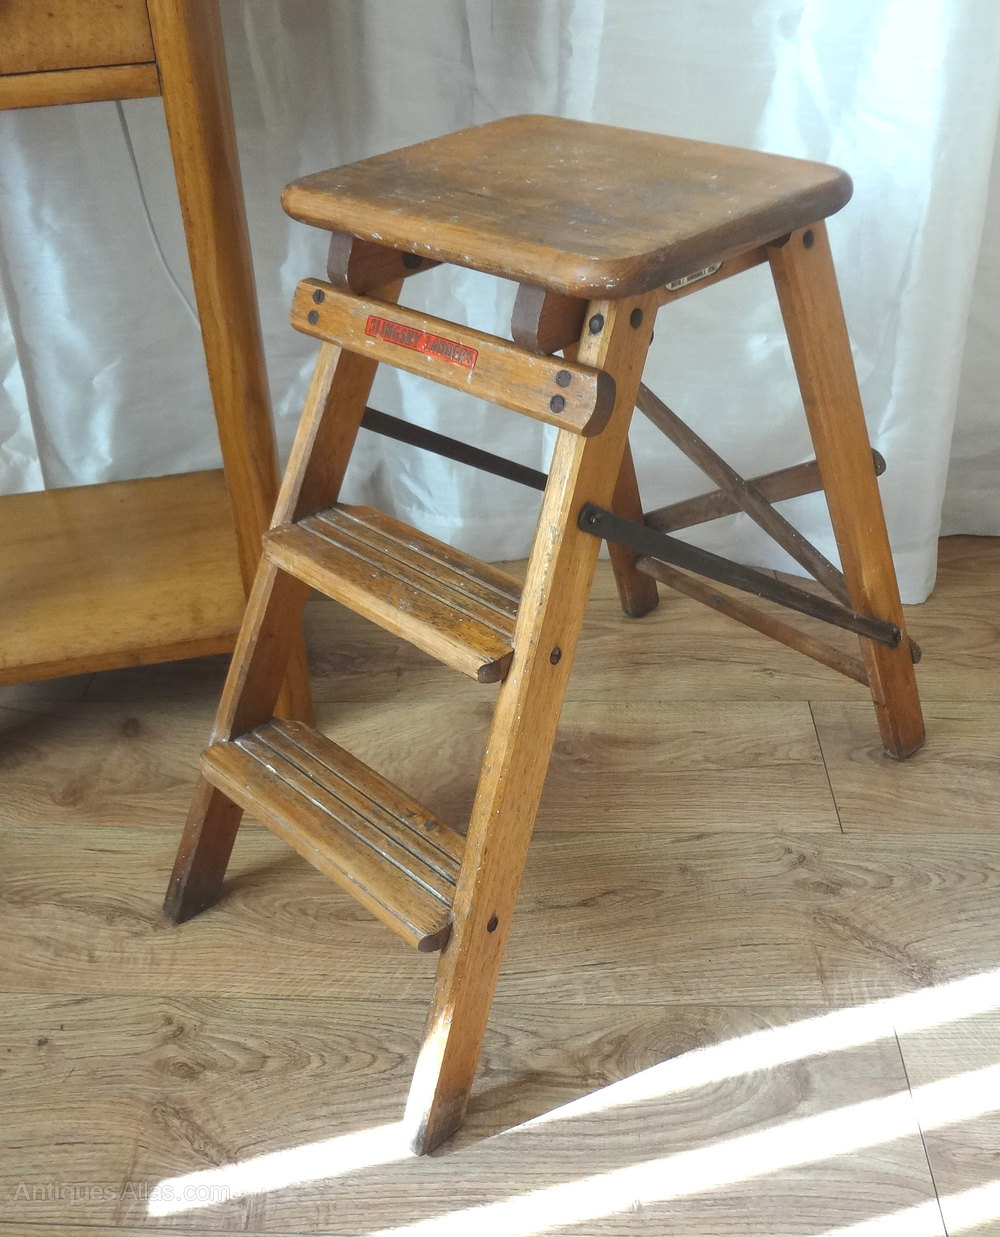 Superb Vintage Slingsby Step Ladder Antiques Atlas Gmtry Best Dining Table And Chair Ideas Images Gmtryco